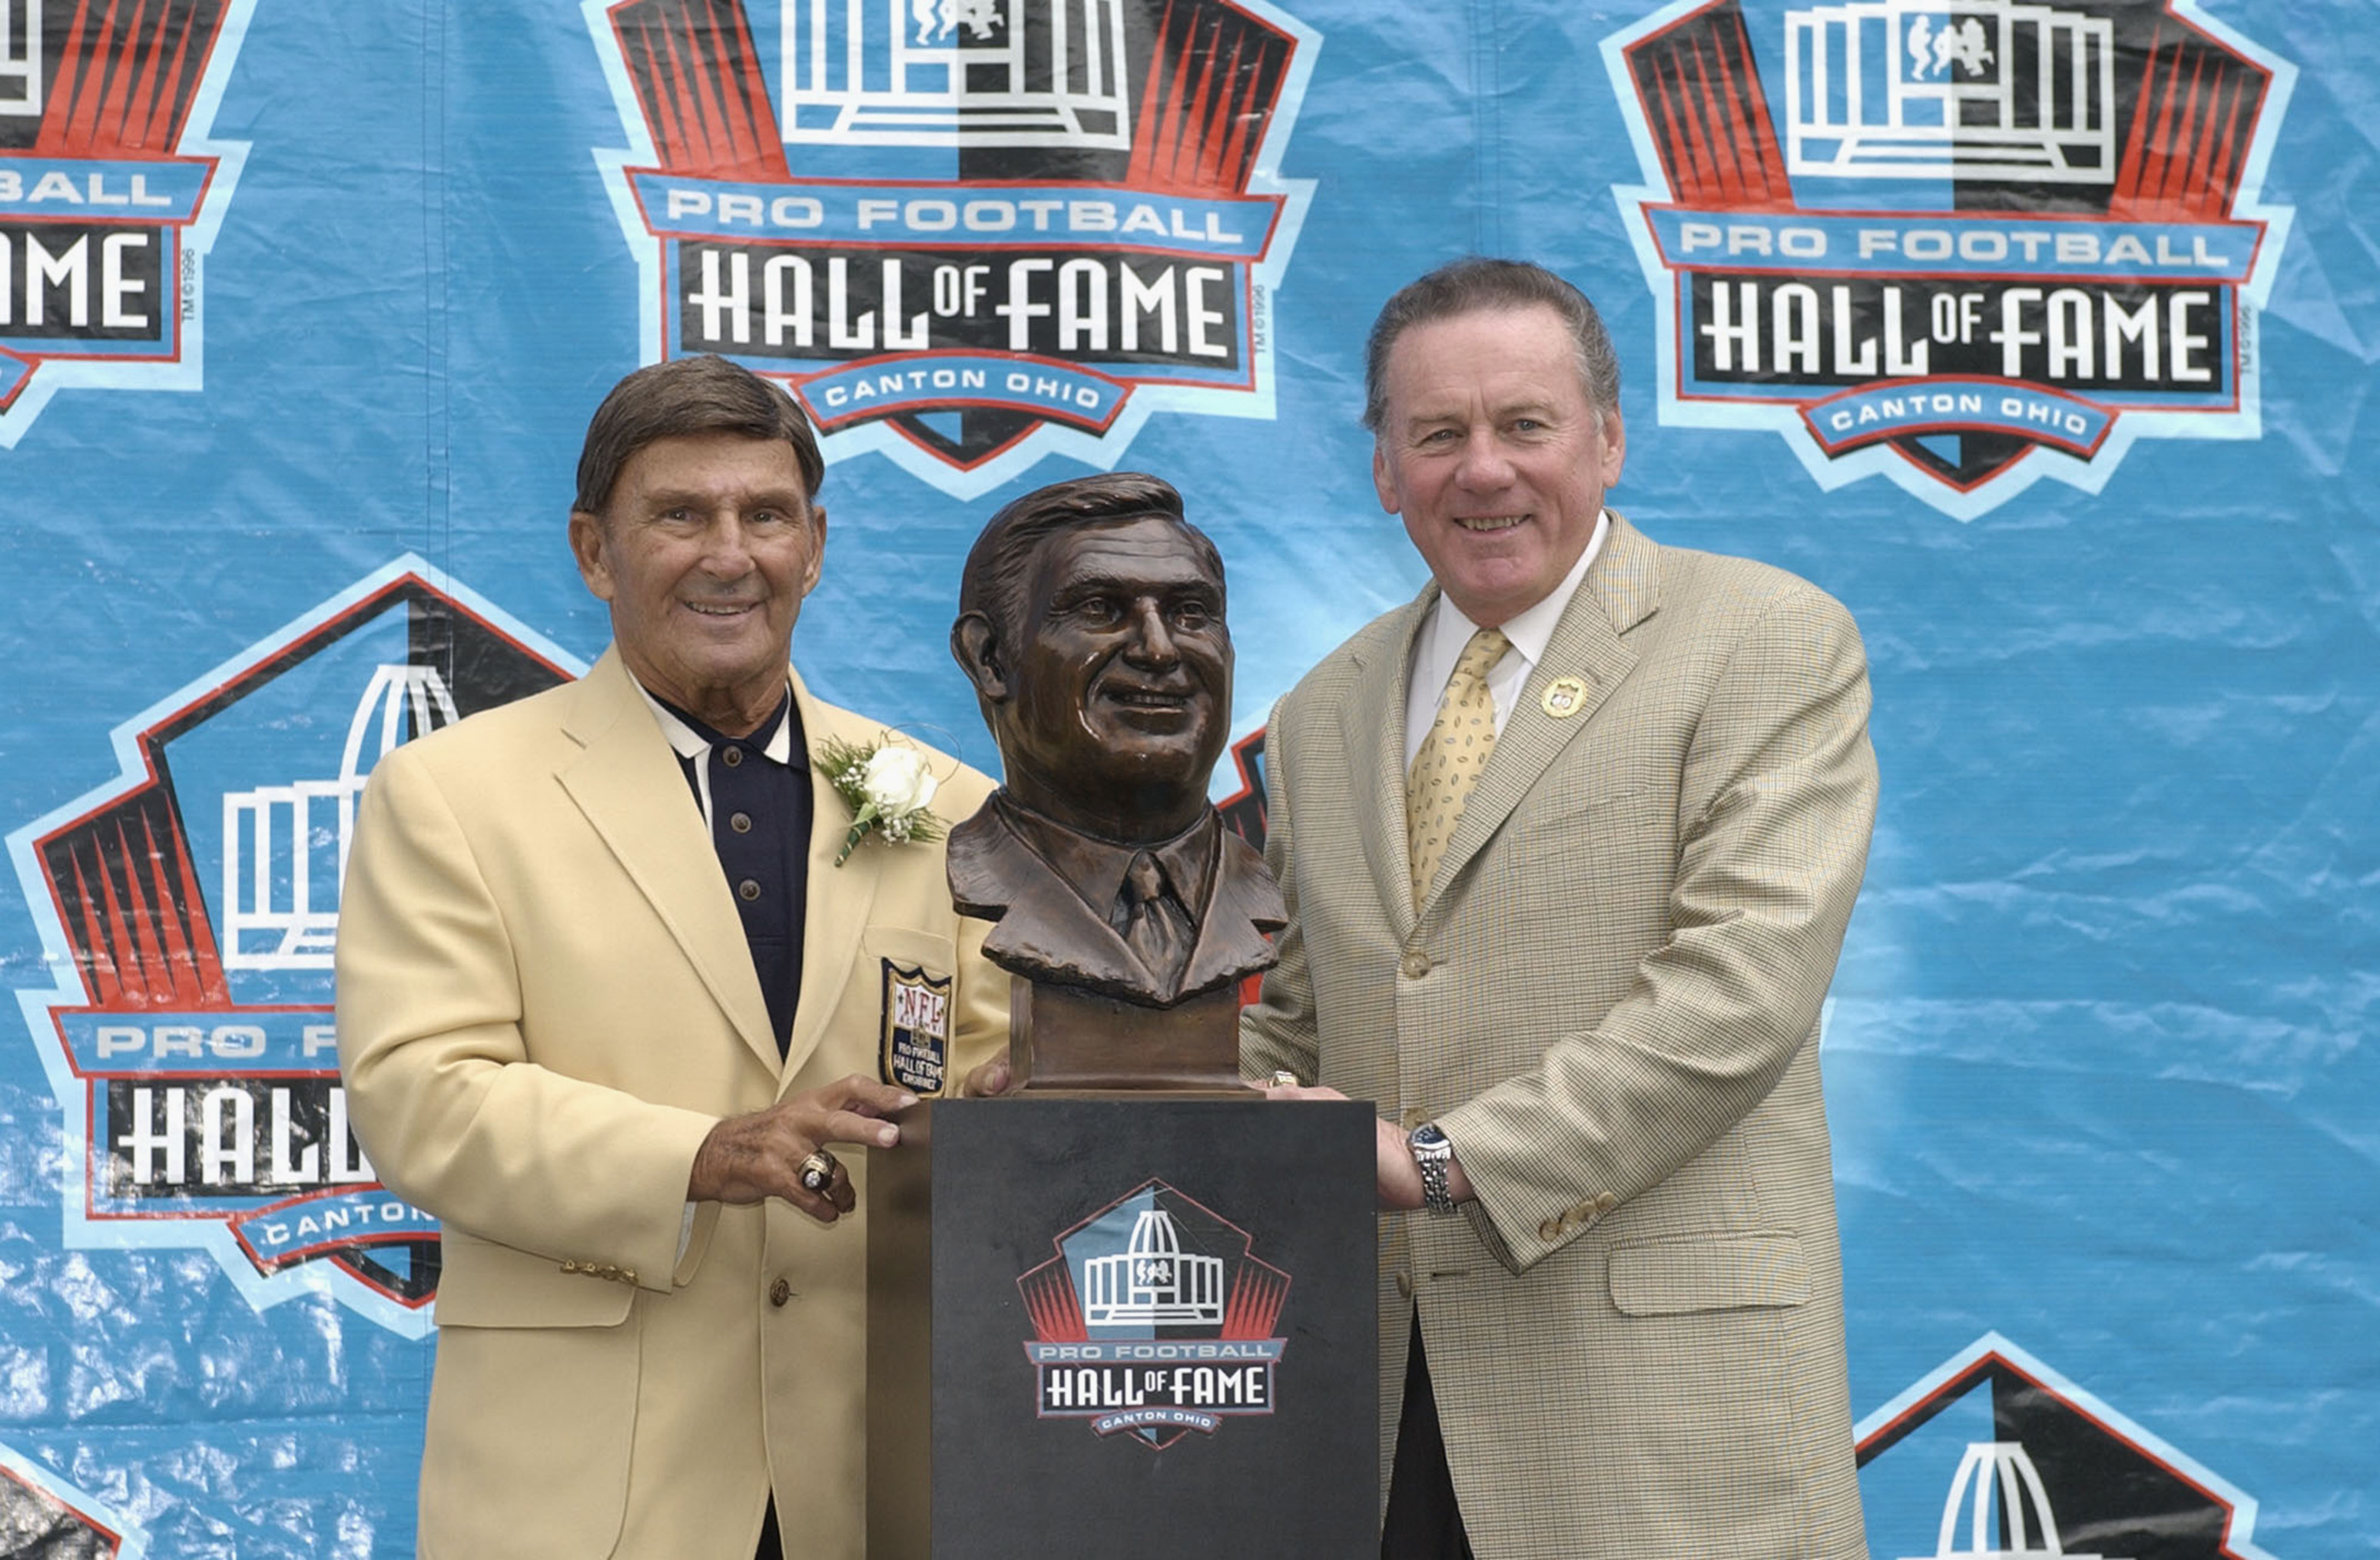 CANTON, OH - AUGUST 3:  Pro Football Hall of Fame inductee Hank Stram (L) poses with his bust and his presenter and fellow Hall of Famer Len Dawson during the 2003 NFL Hall of Fame Induction ceremony on August 3, 2003 in Canton, Ohio.  (Photo by David Max